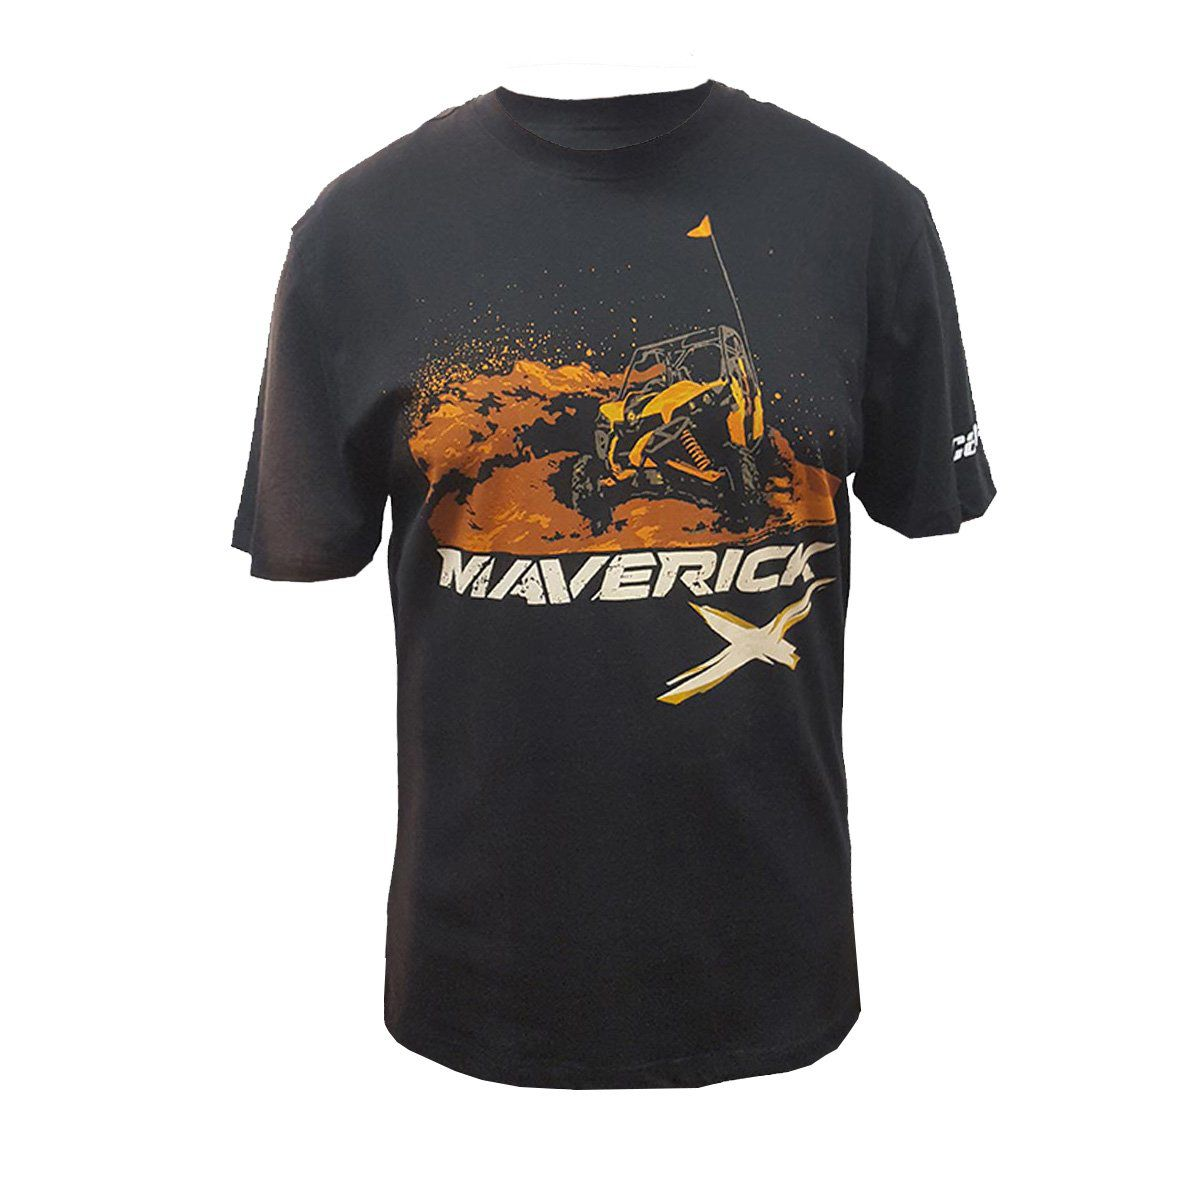 Camiseta Can-Am Masculina Maverick Preta